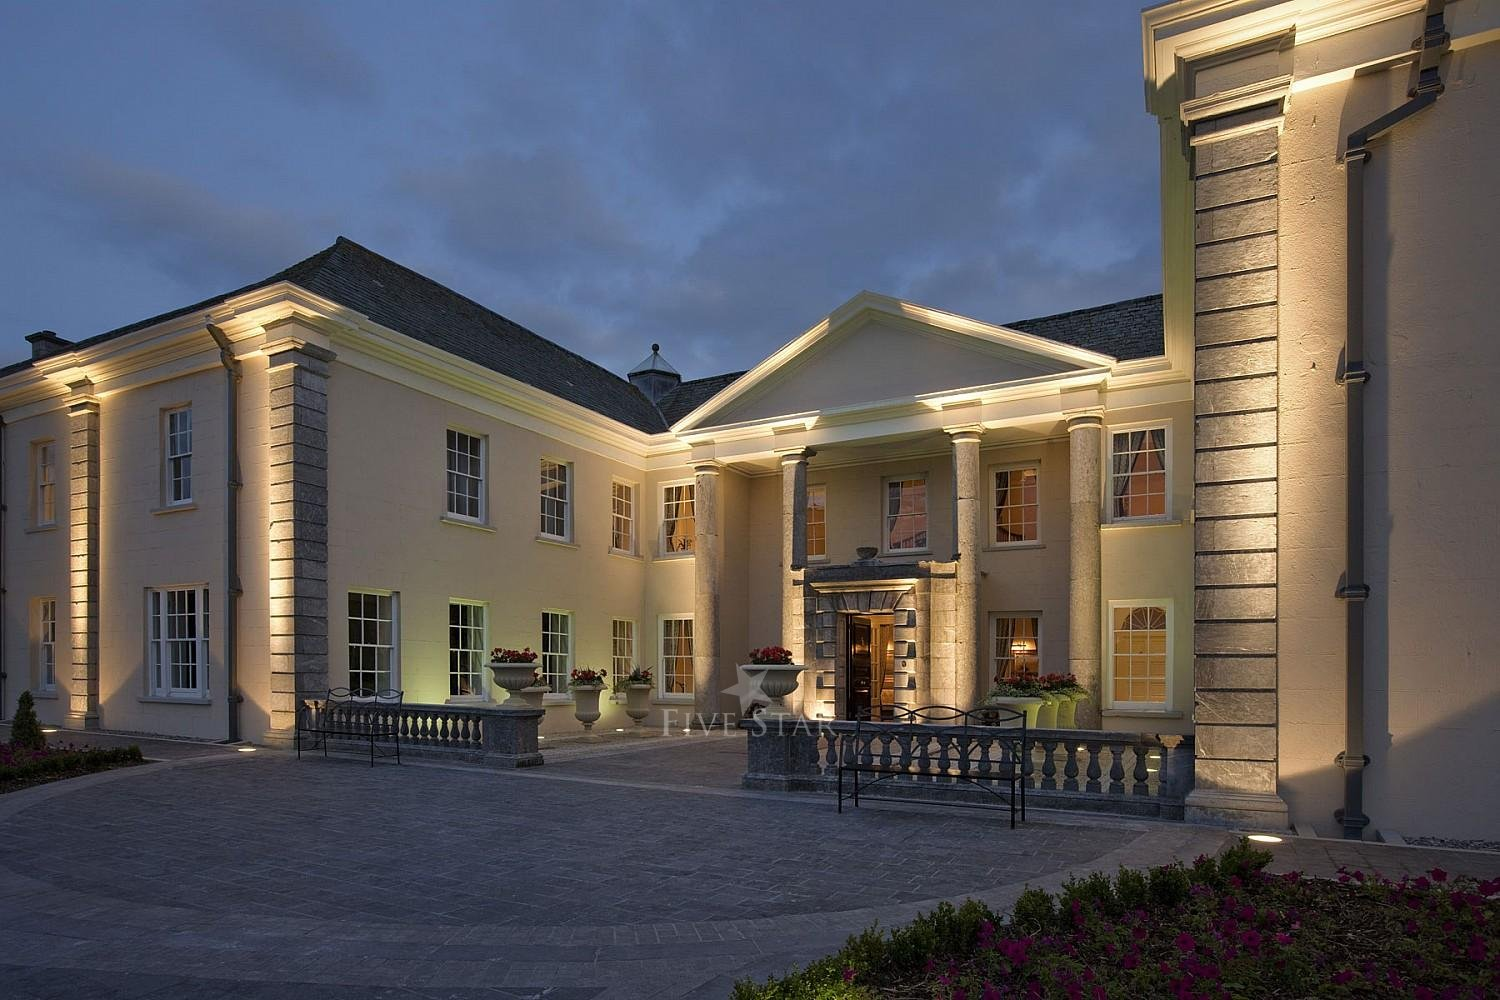 Castlemartyr Resort photo 2